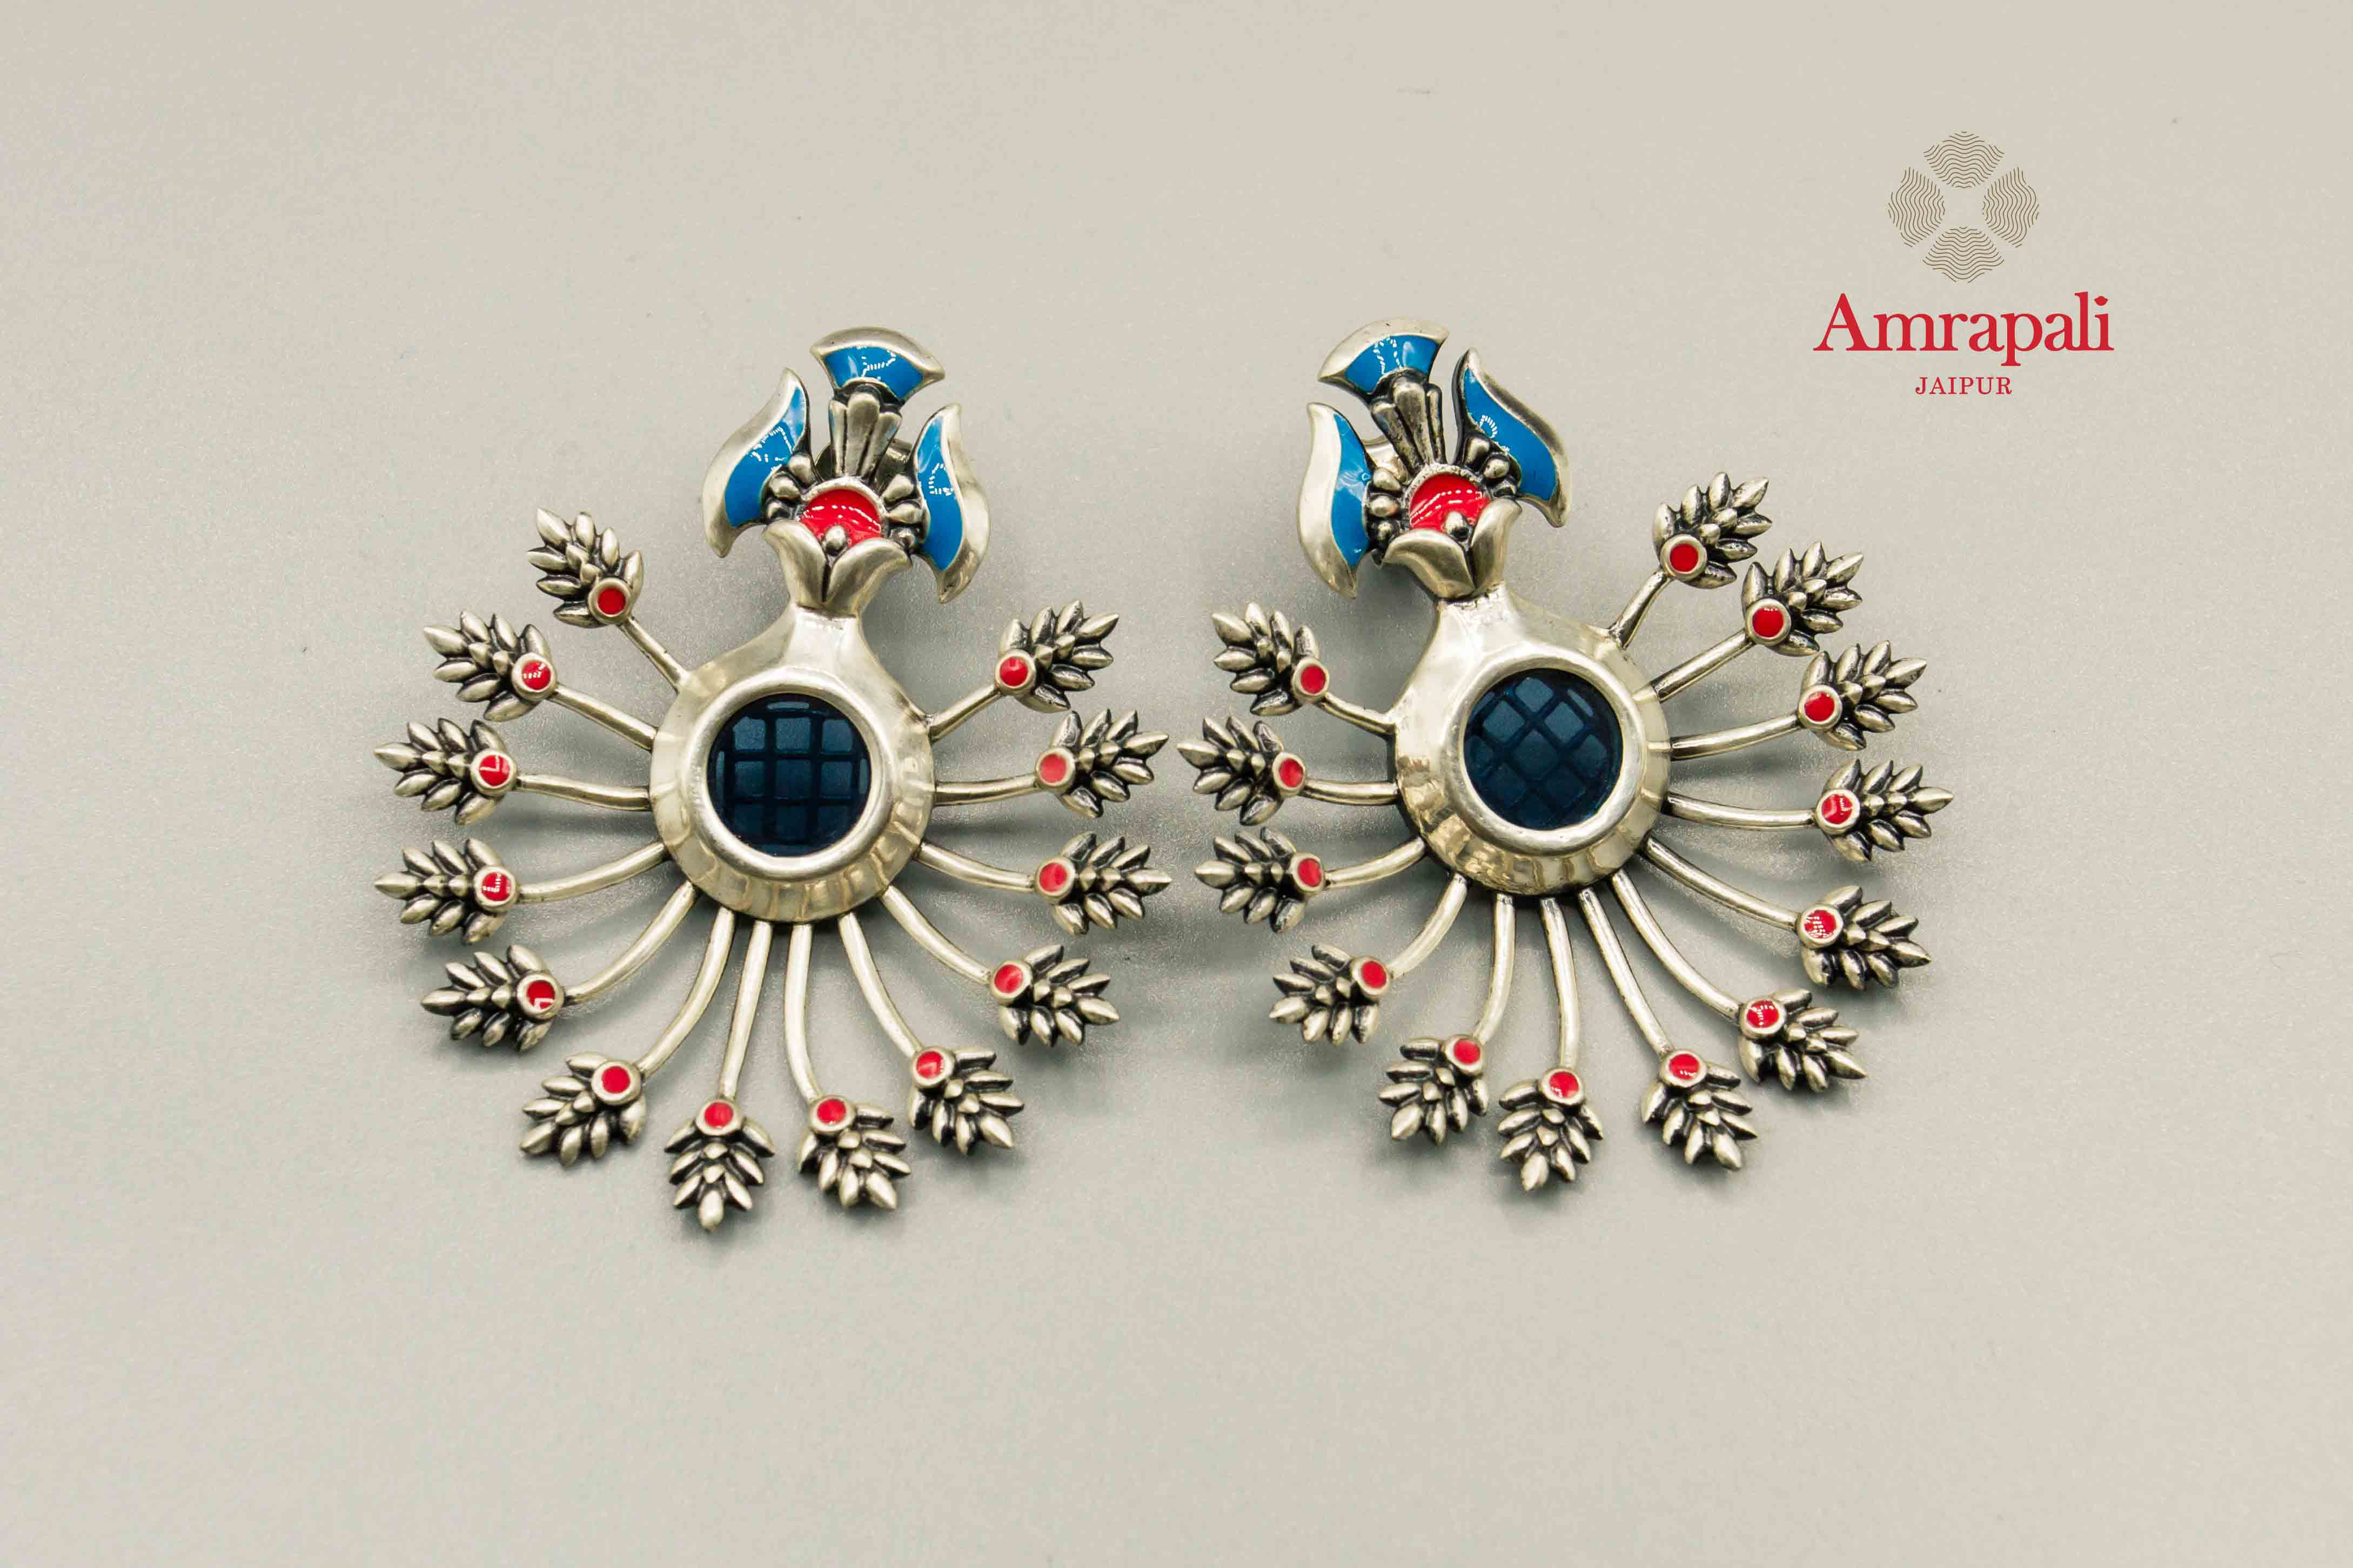 20C152 Silver Enamel Floral Stud Earrings